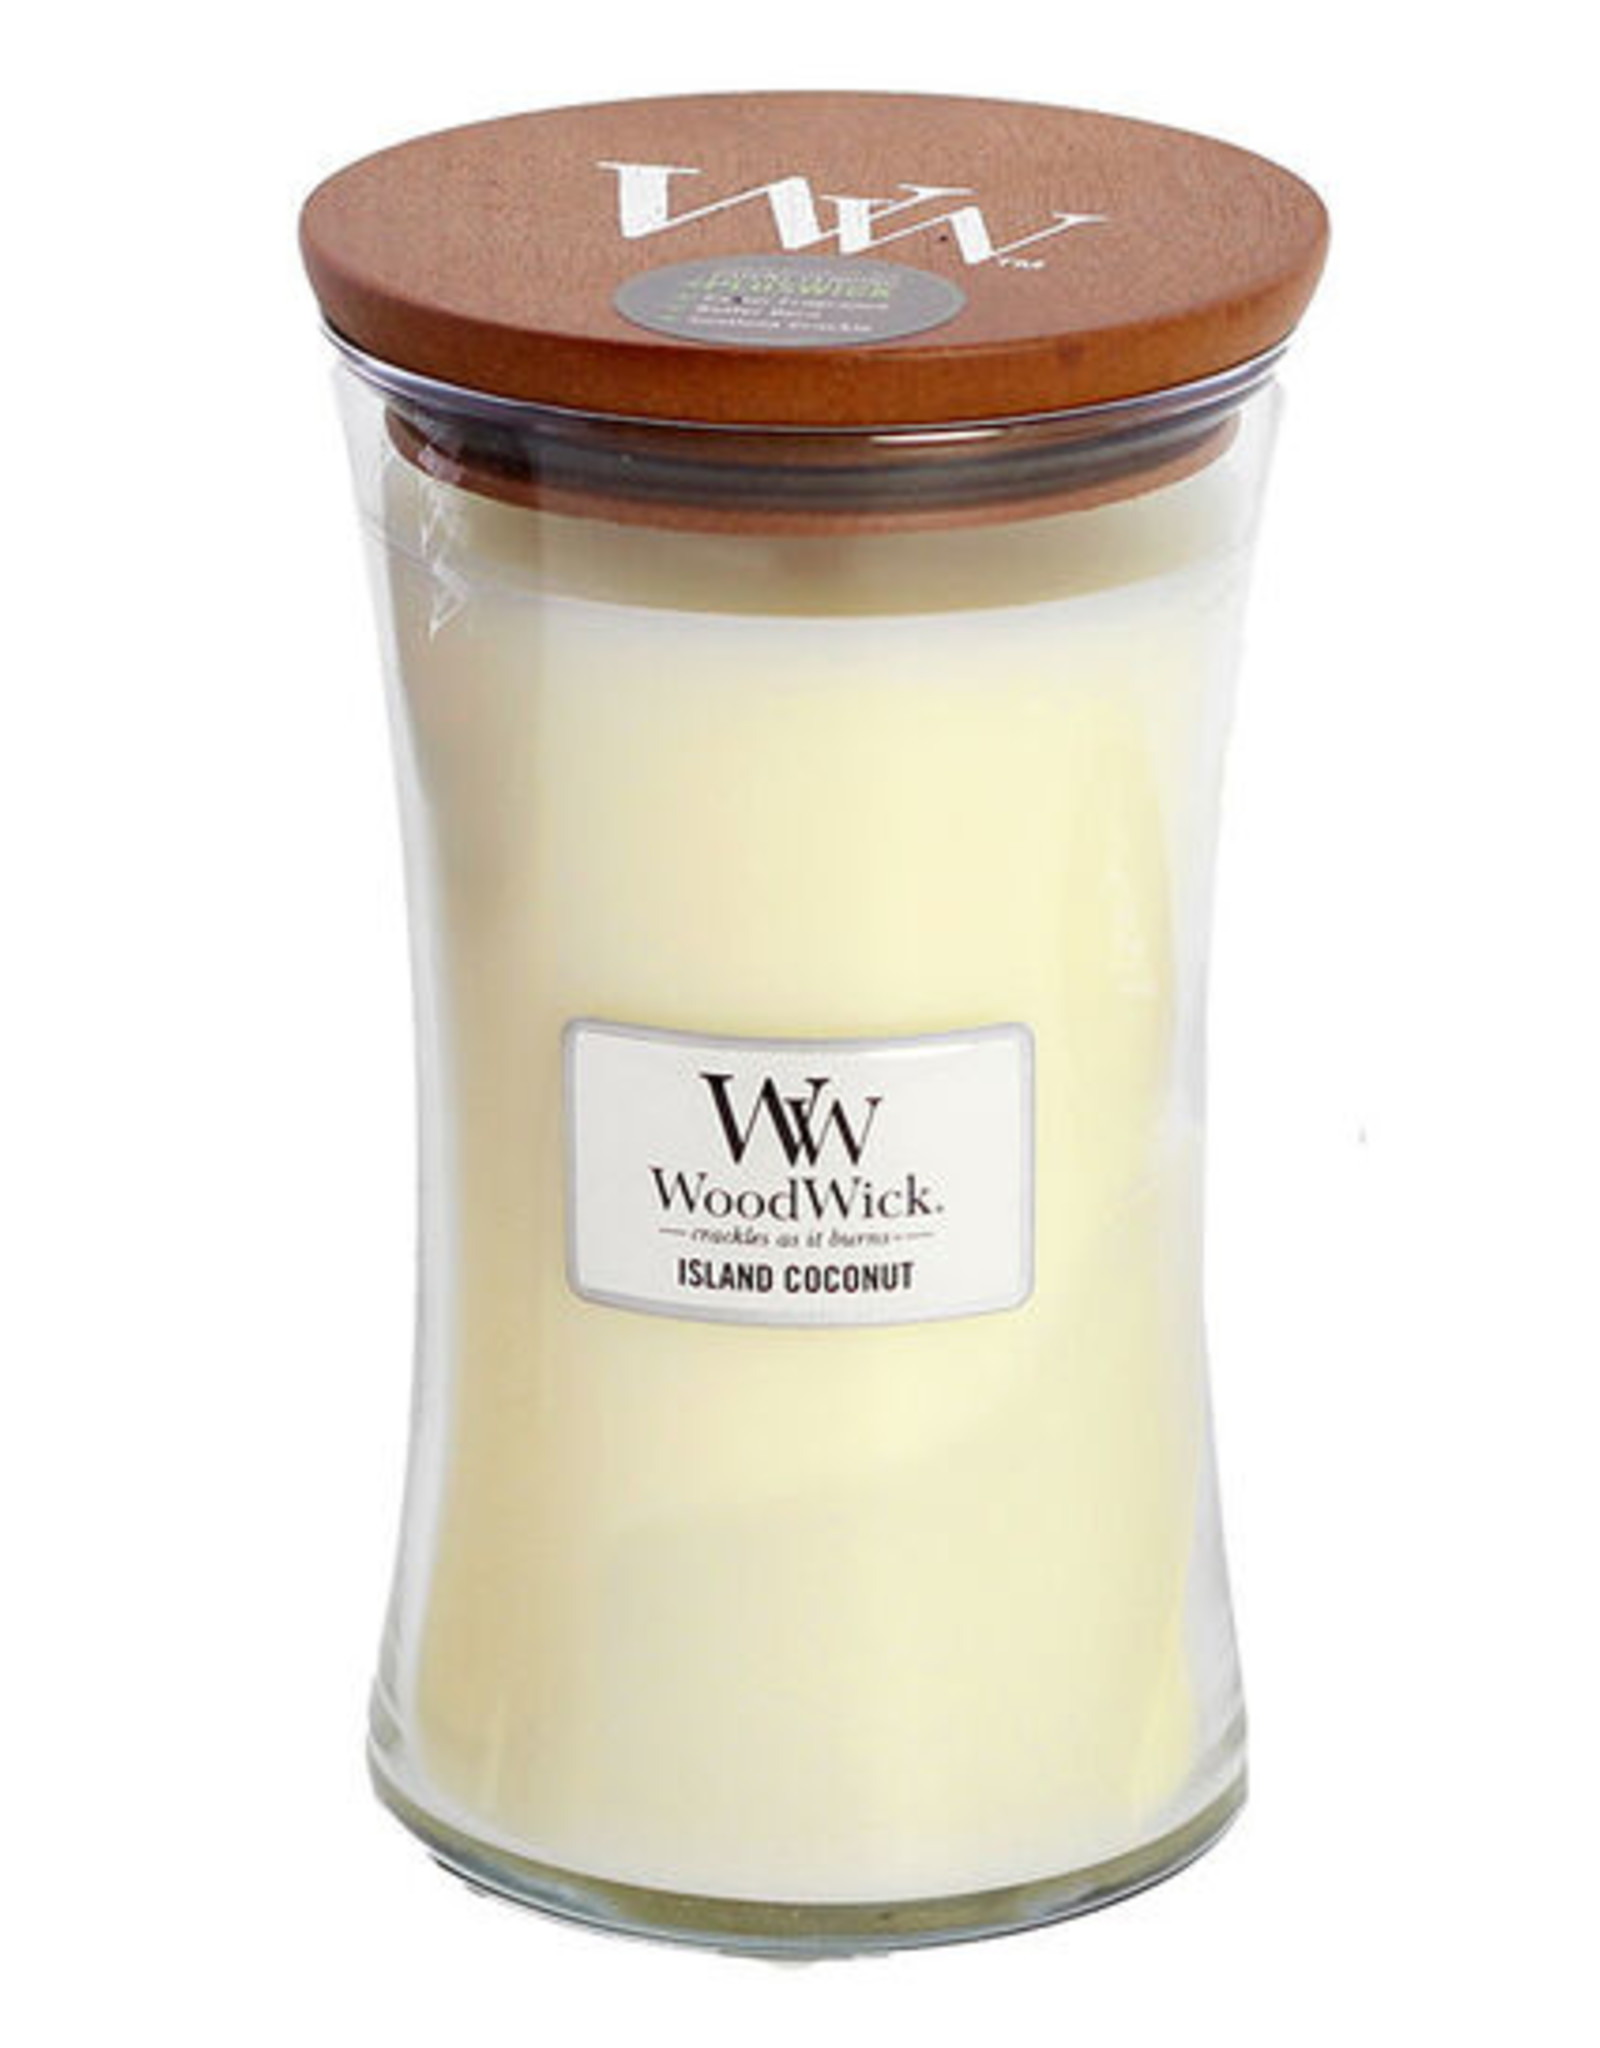 Woodwick Woodwick Island Coconut Large Candle